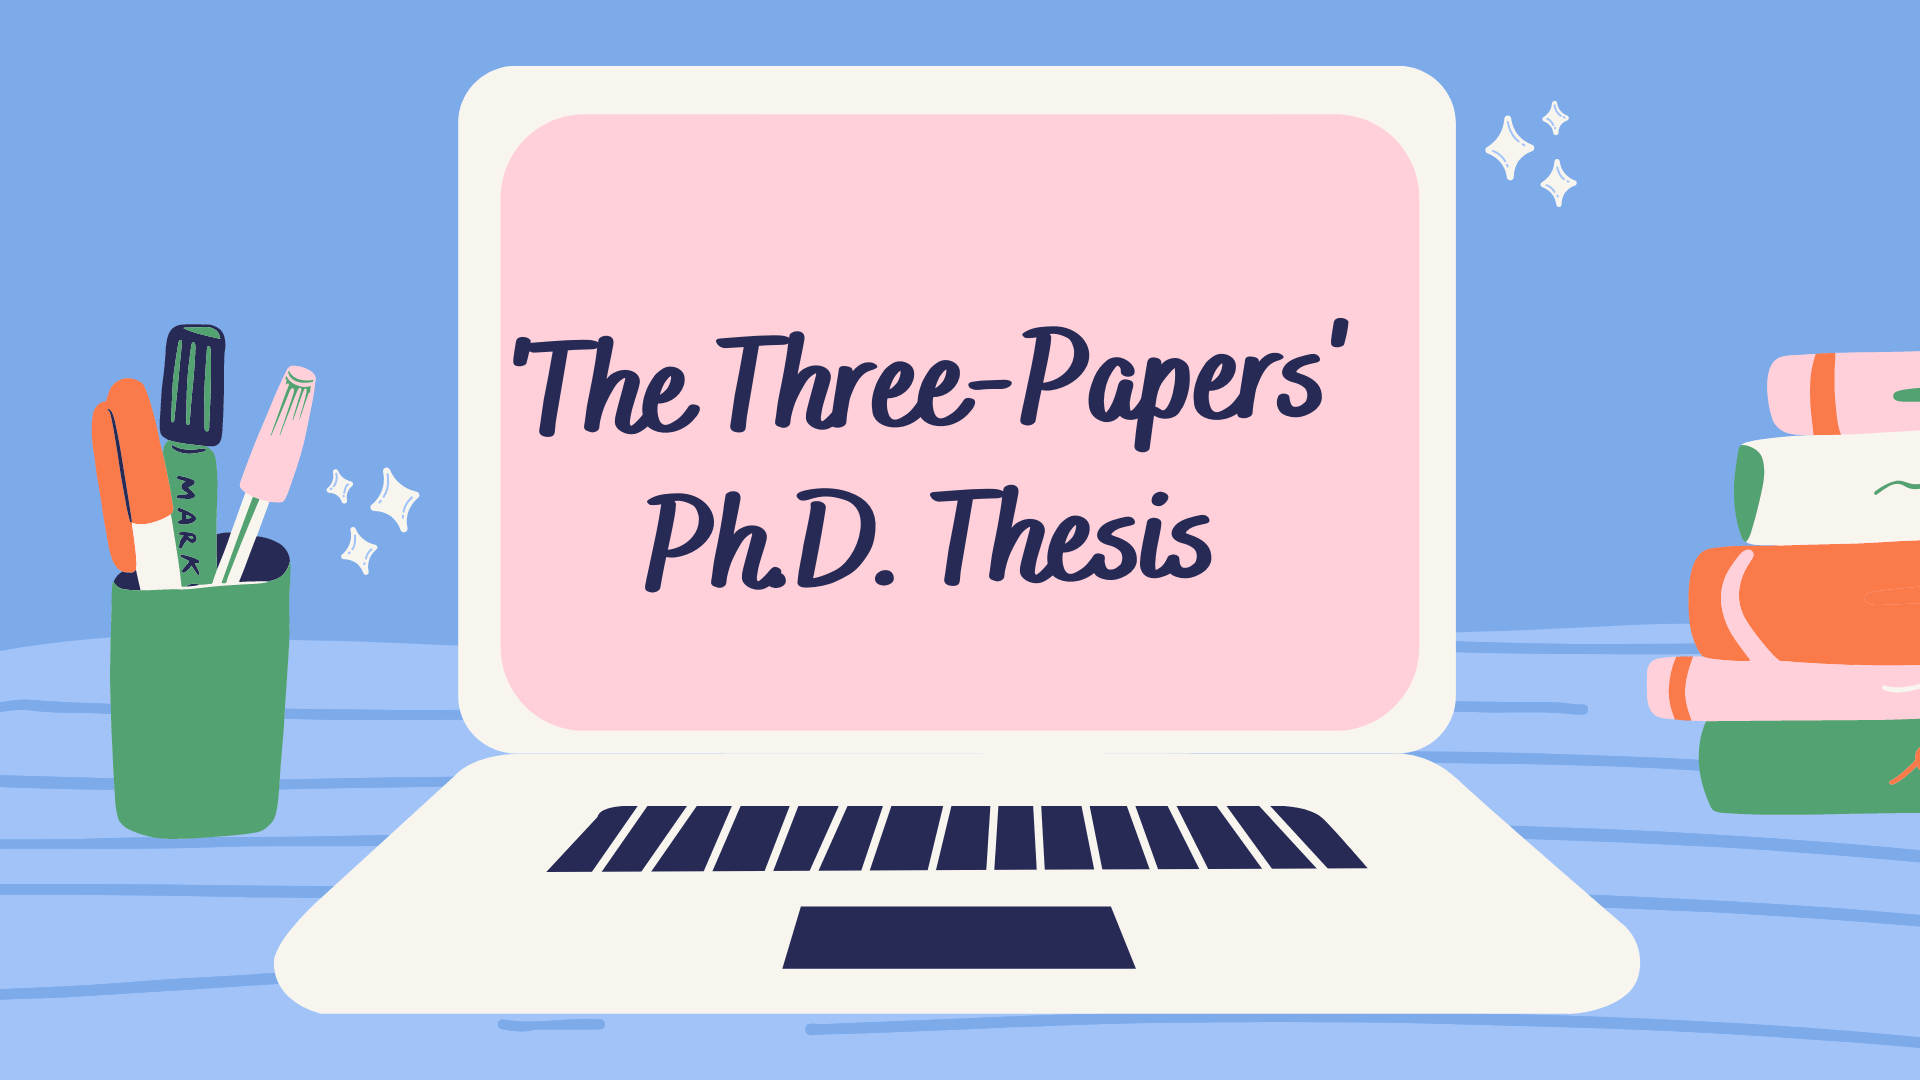 Three-papers PhD Thesis